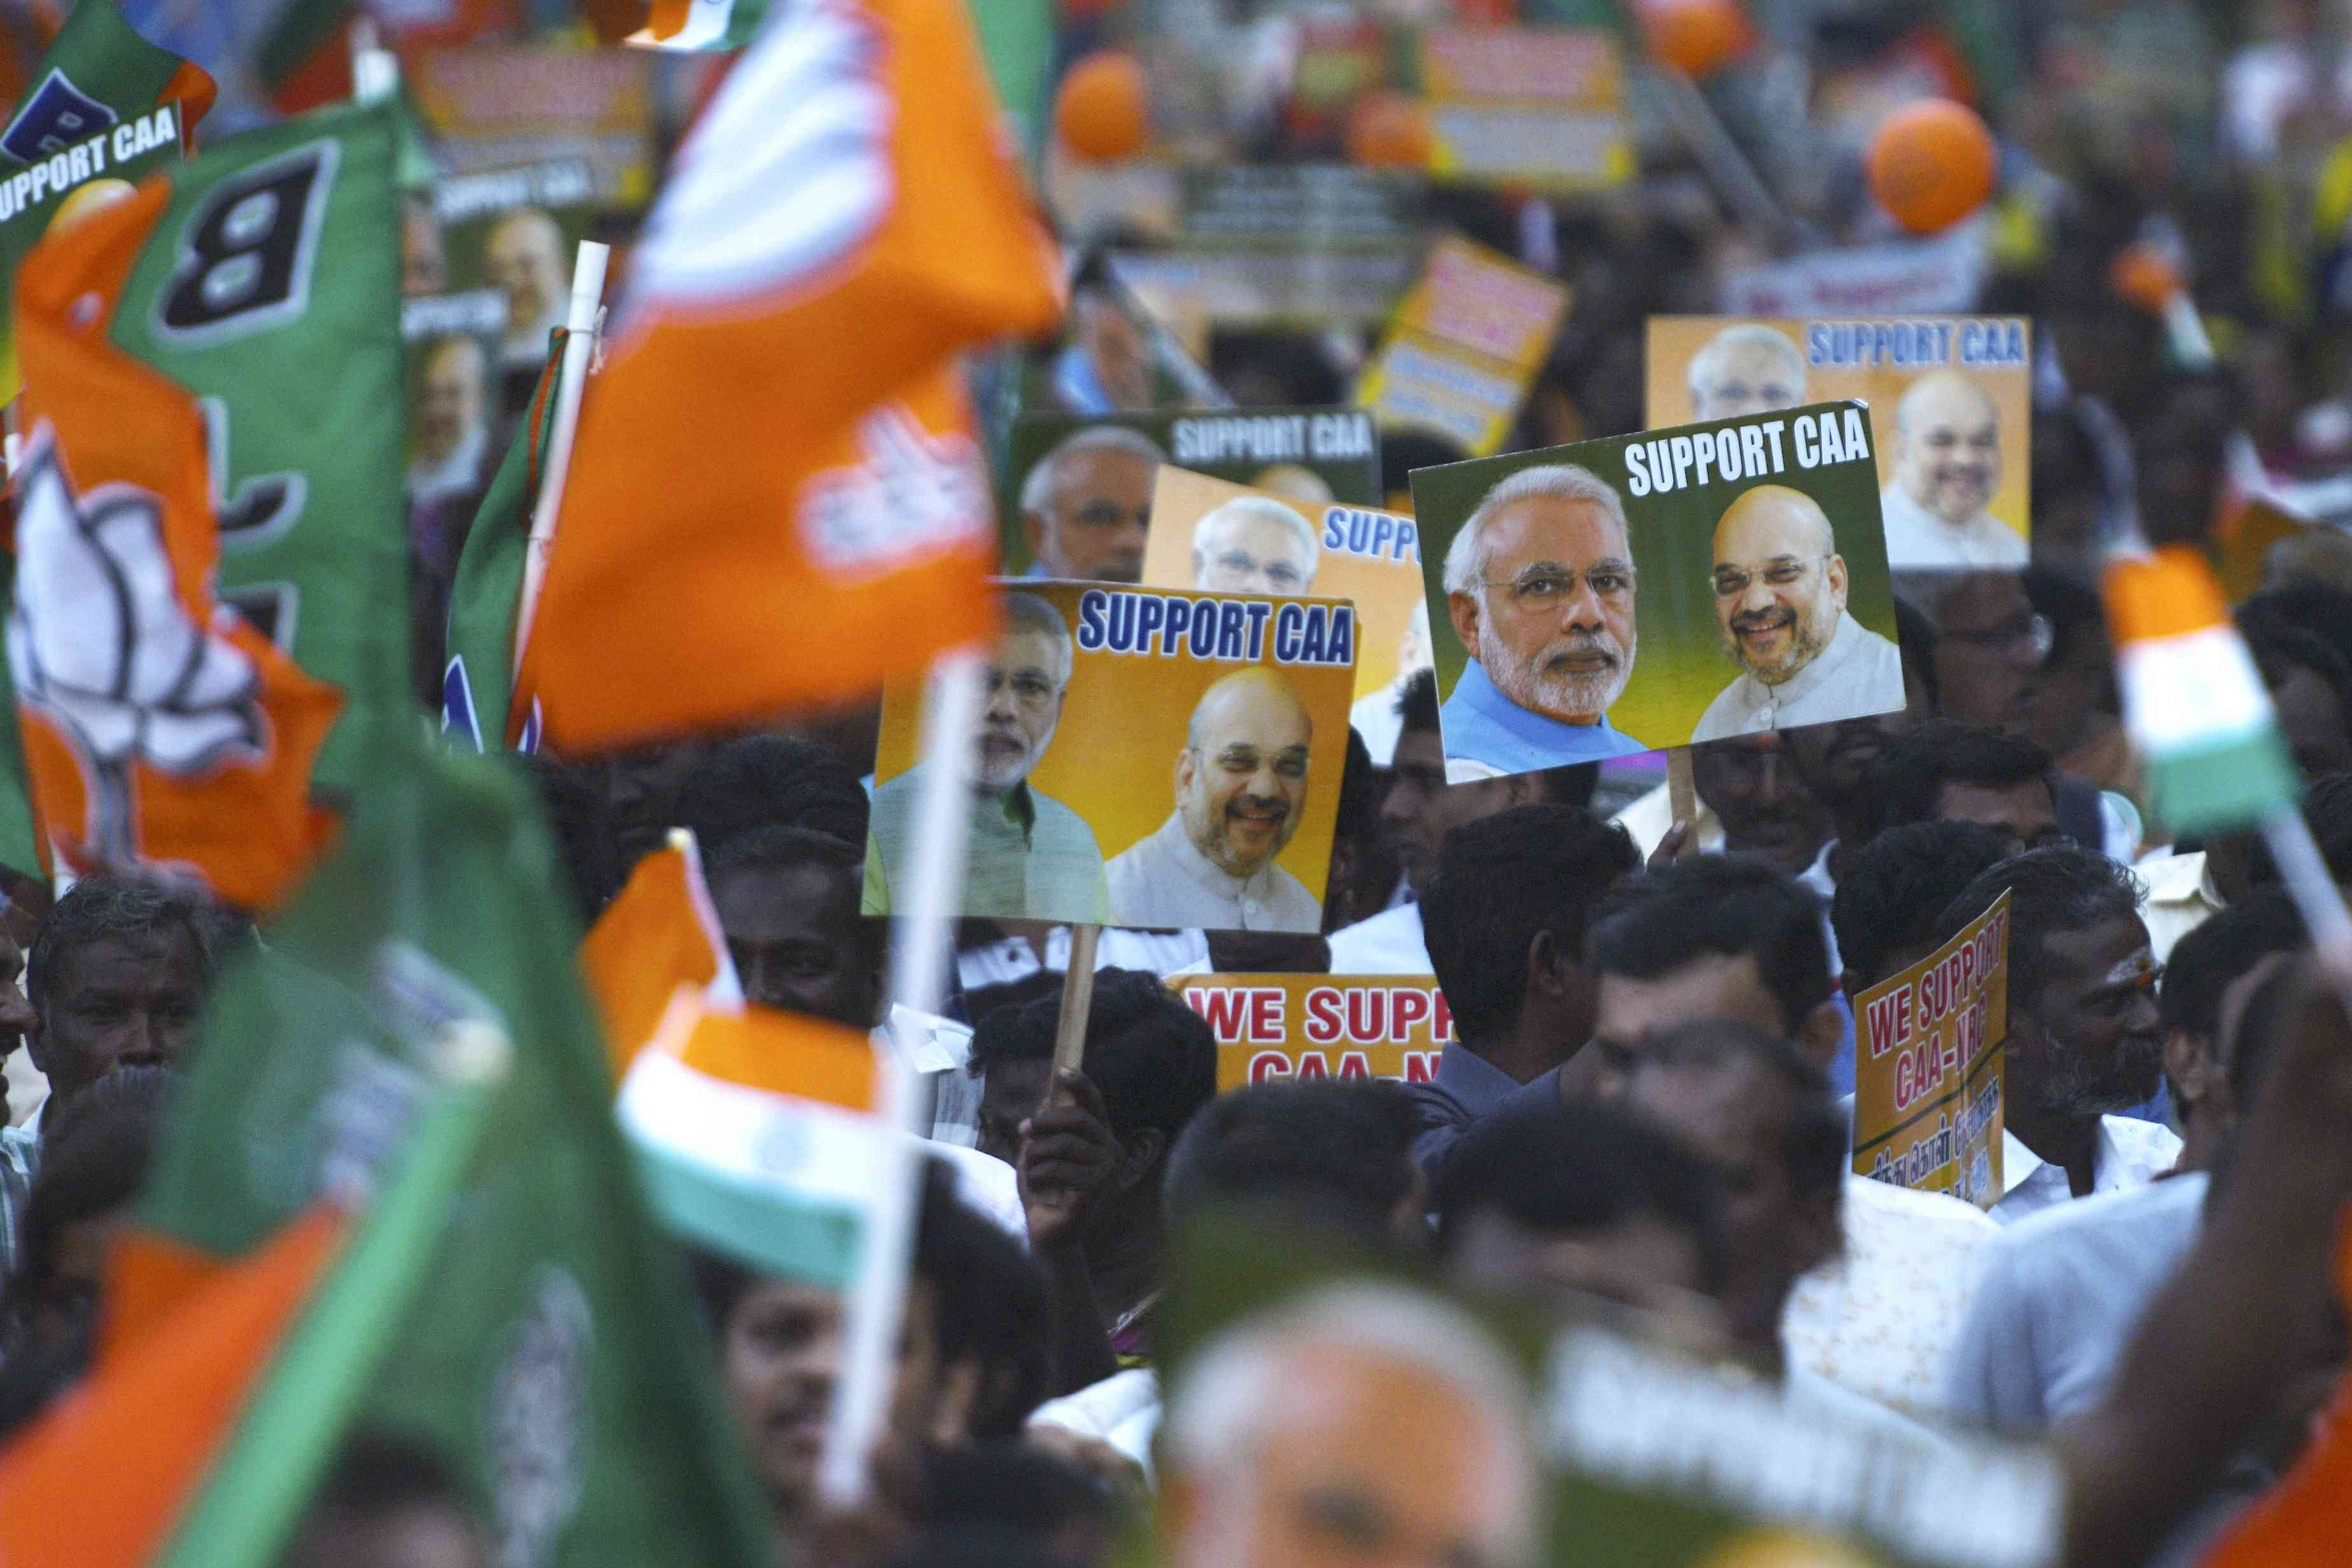 Supporters of the Bharatiya Janata Party wave party flags and hold placards in support of the government's Citizenship Amendment Act and the National Register of Citizens during a rally in Chennai on January 7. Credit: AFP